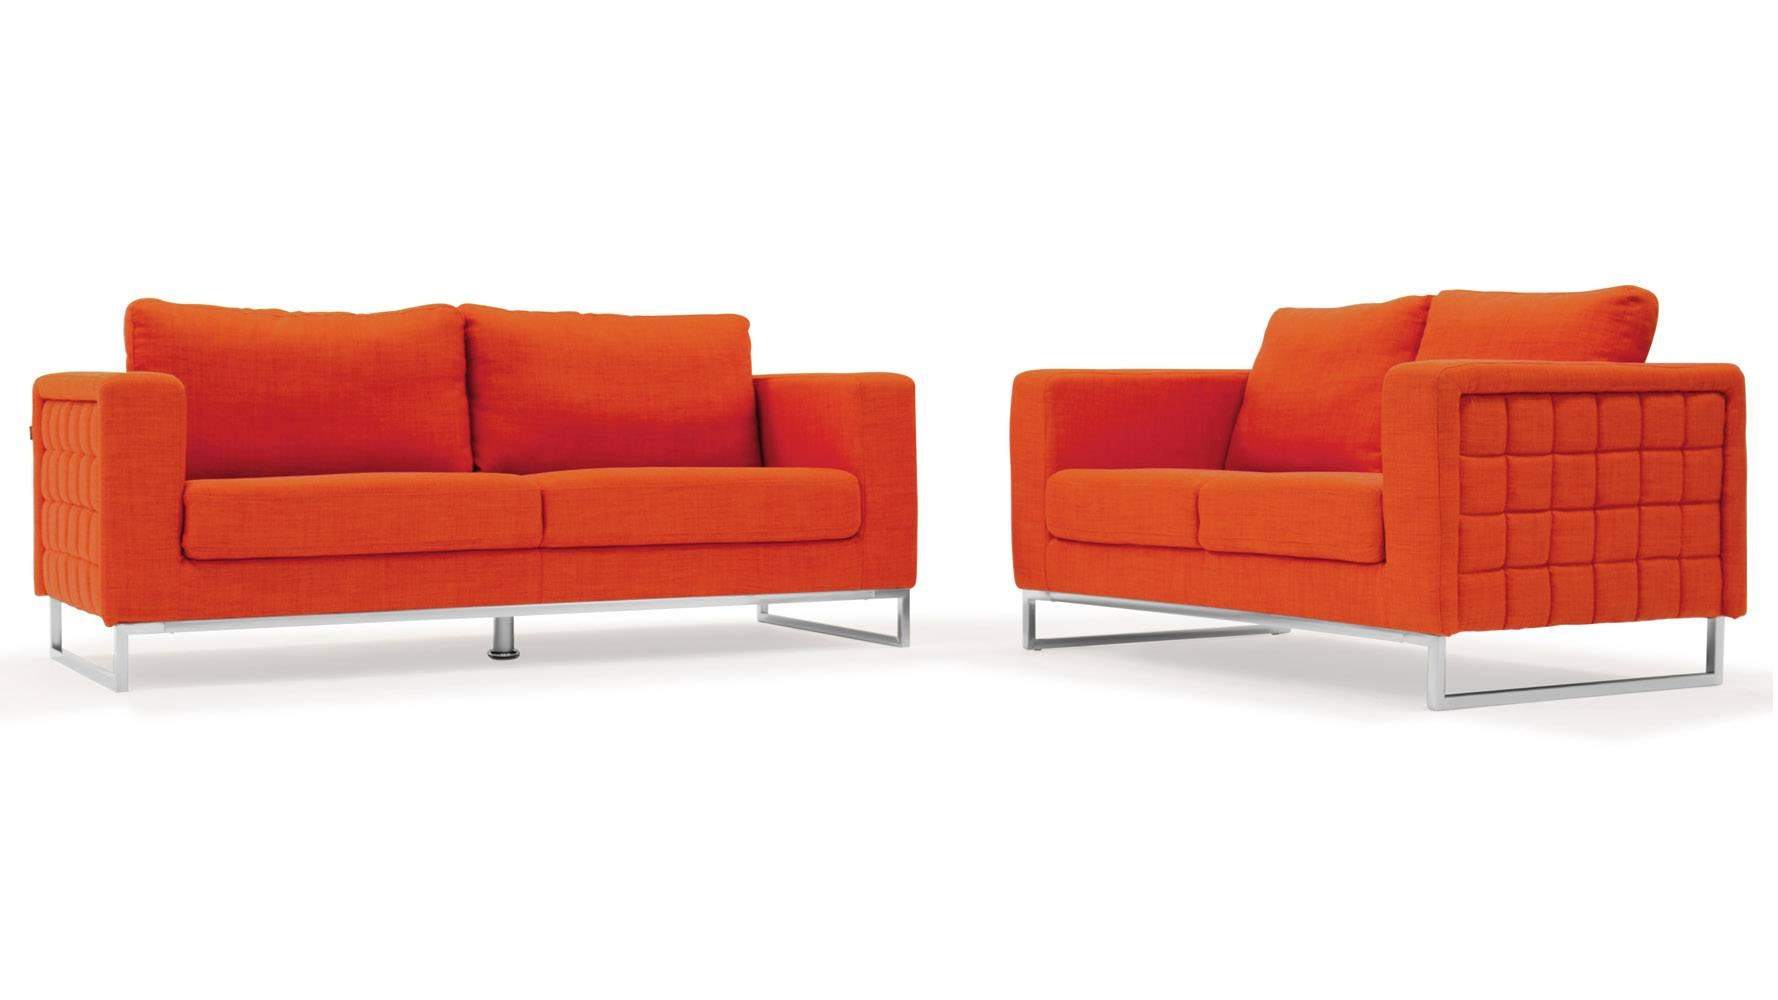 Modern Orange Fabric Upholstered 2 Piece Sofa Set With Stainless inside 2 Piece Sofas (Image 13 of 15)